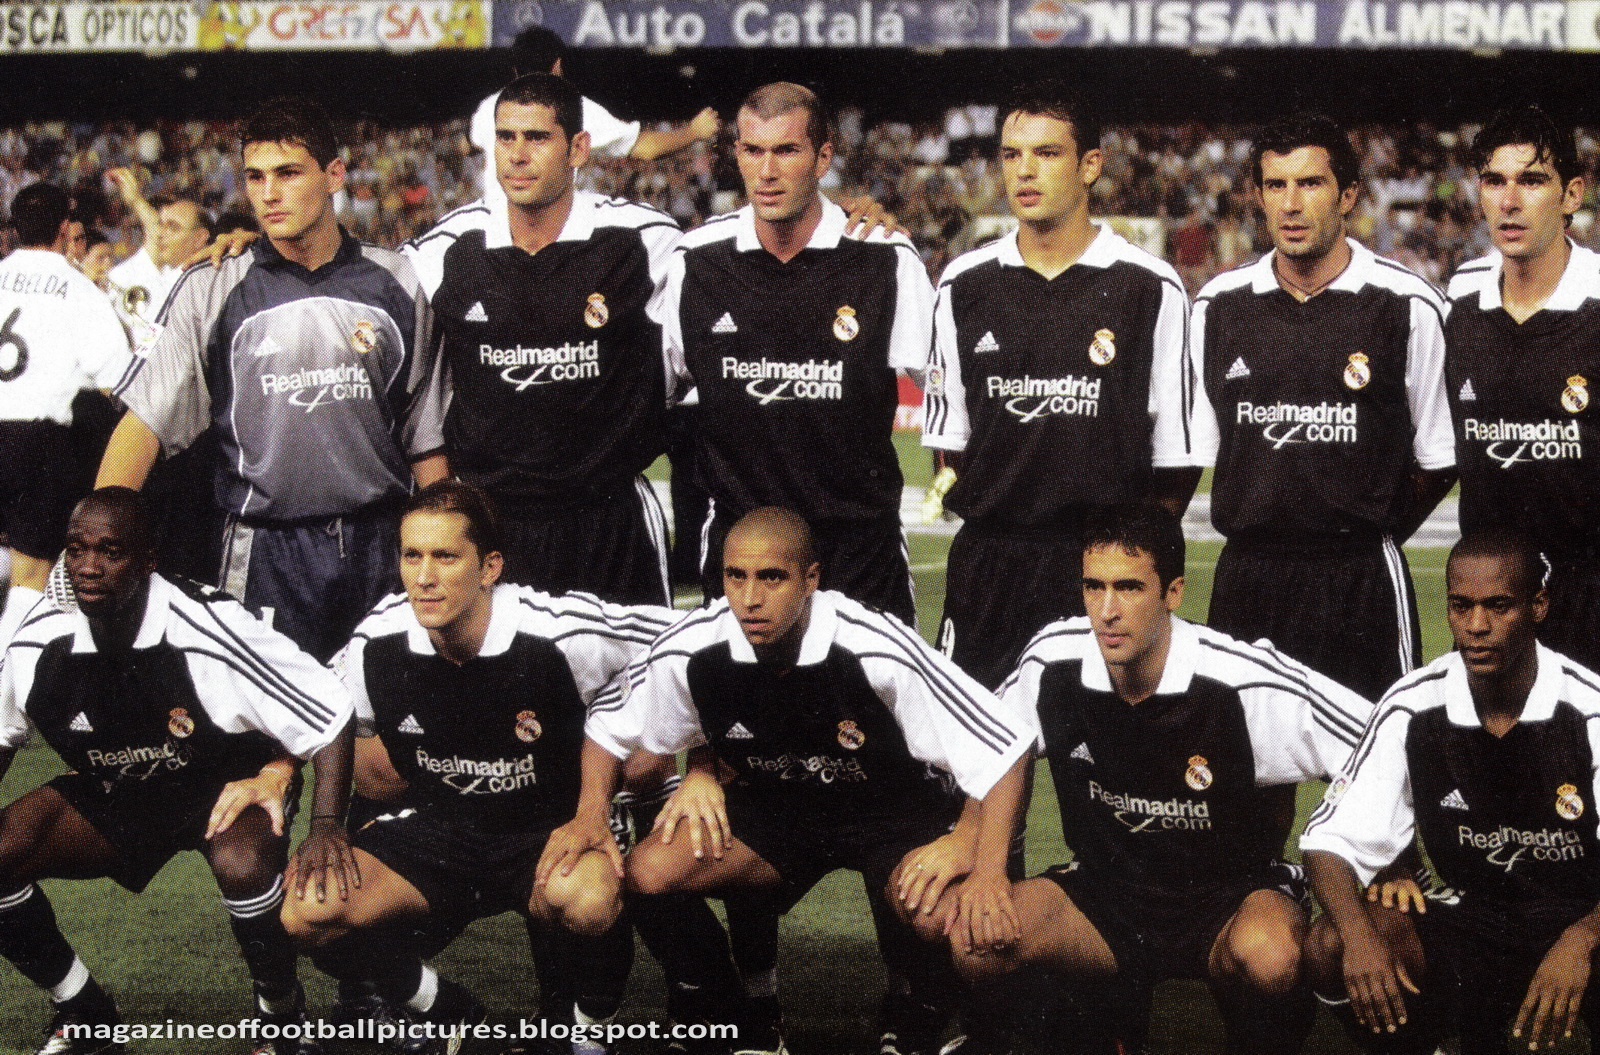 Real Madrid 2001